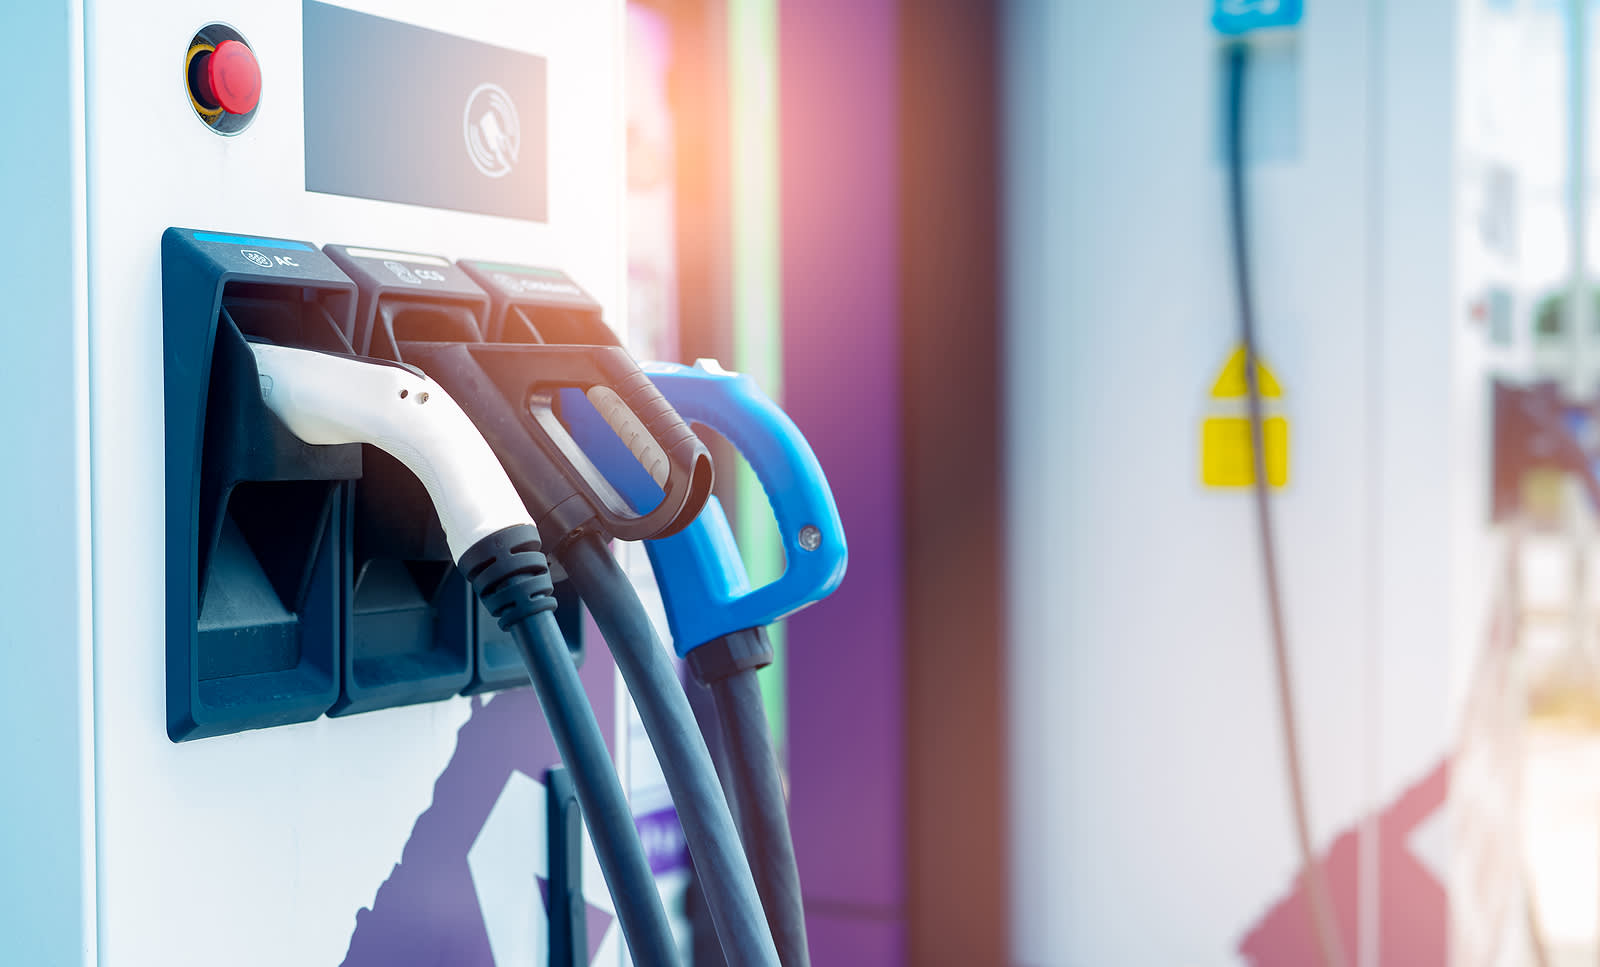 What's better for business: pure EV or hybrid fleets?